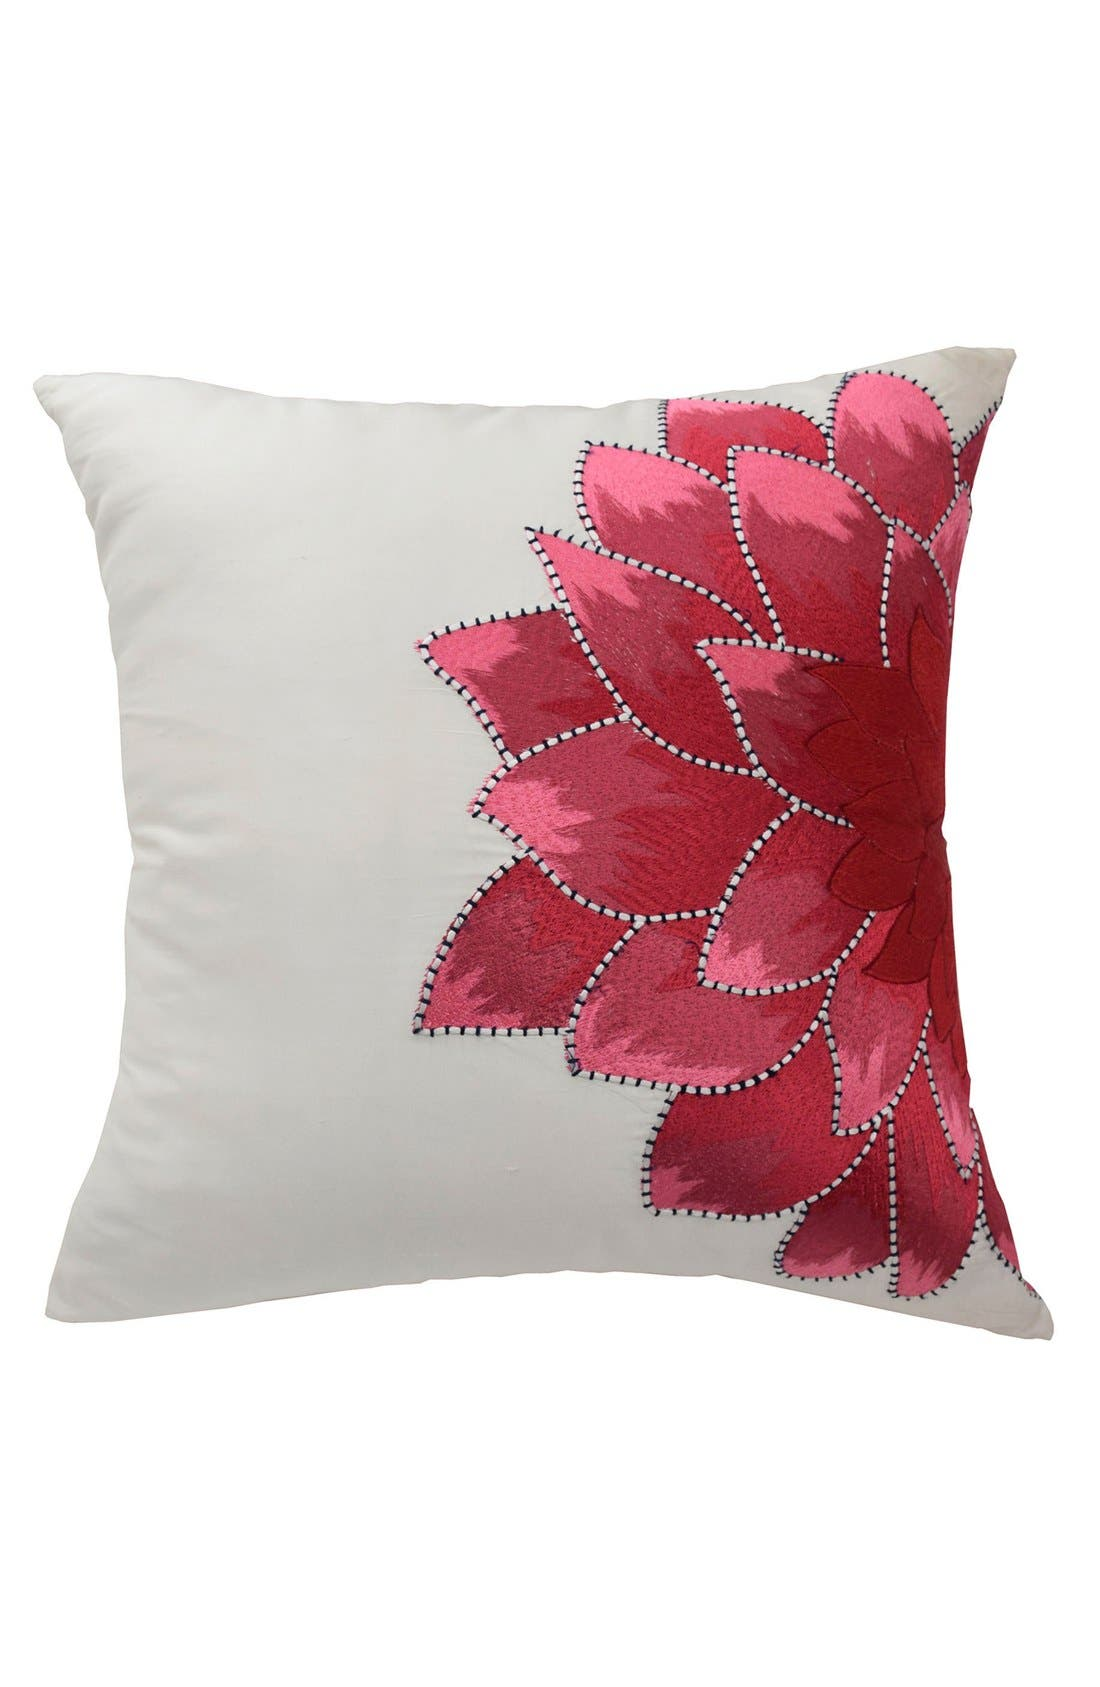 BLISSLIVING HOME 'Dahlia' Pillow